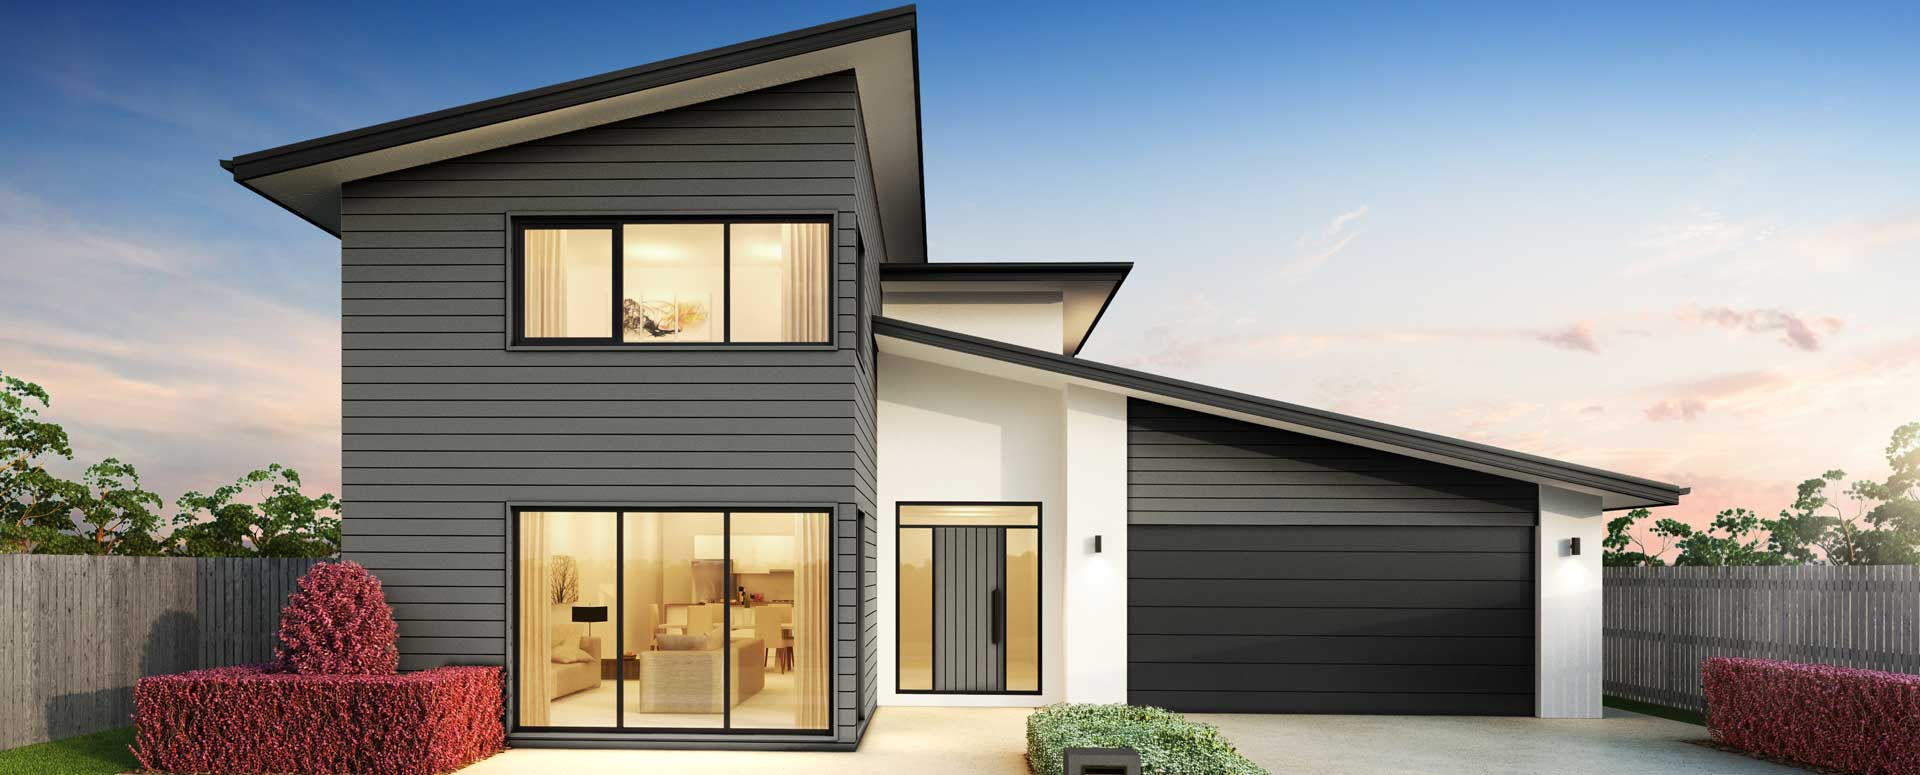 Bayliss Penny Homes Banner Image